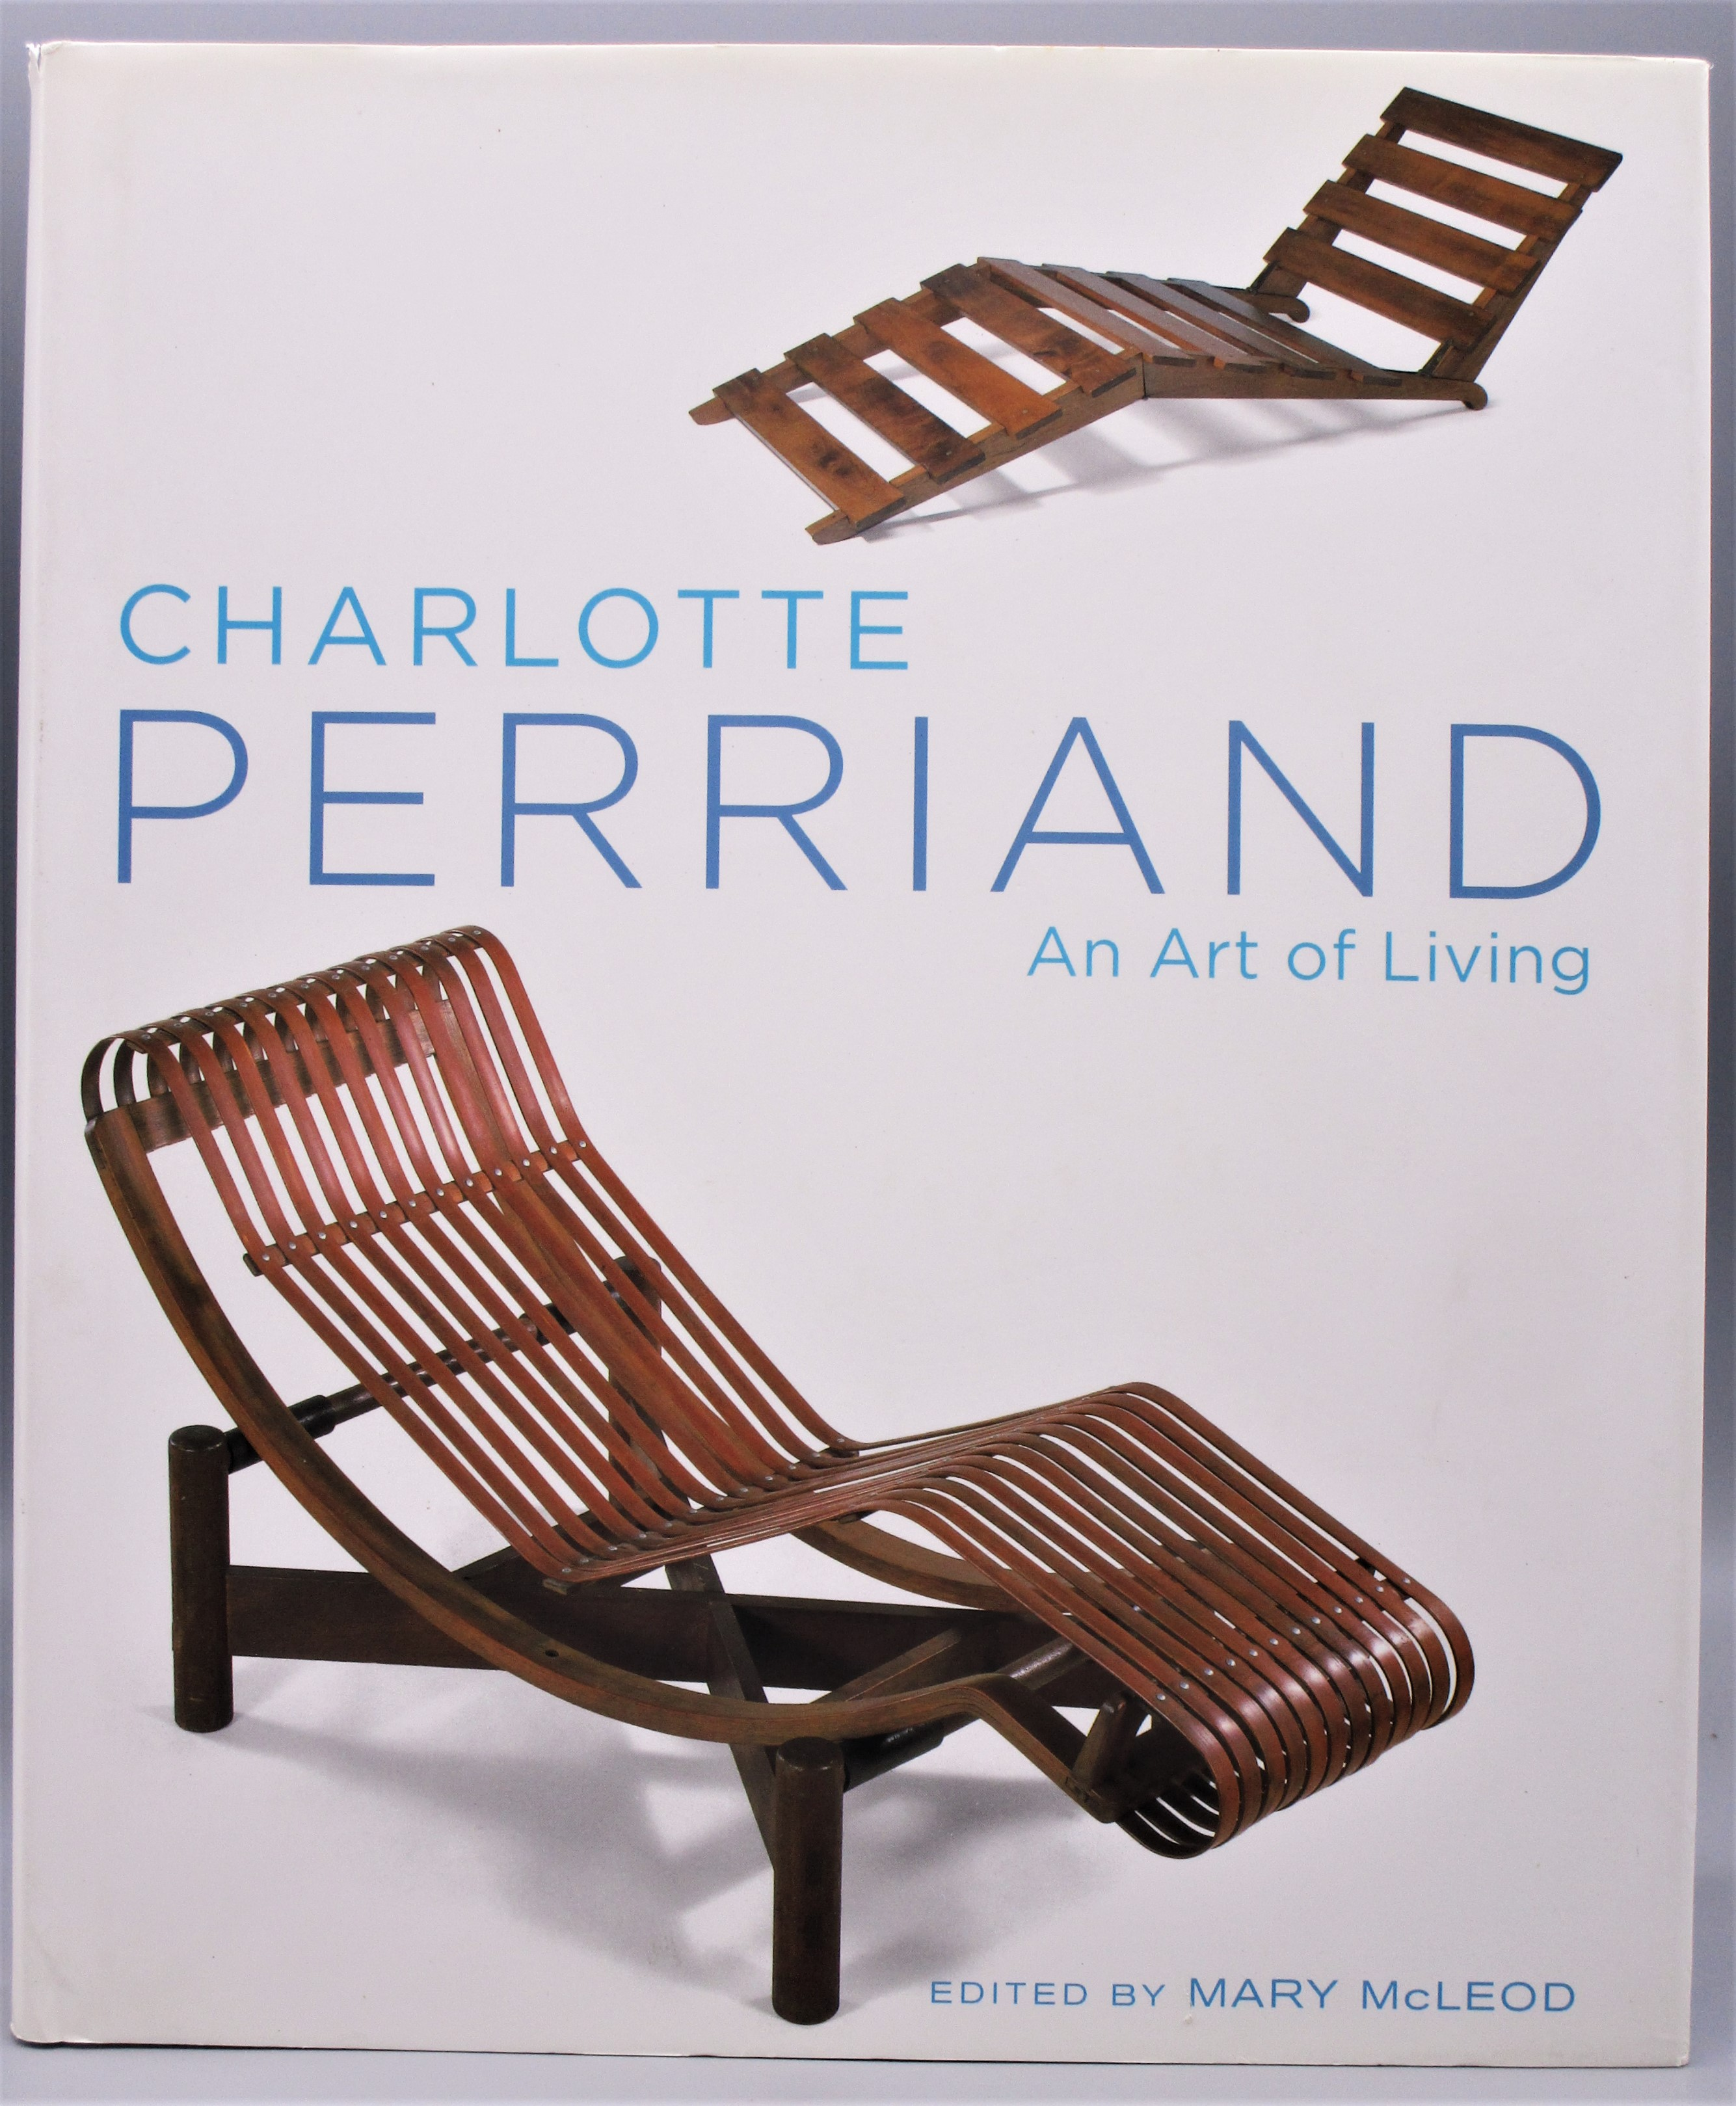 CHARLOTTE PERRIAND: ART OF LIVING, by Mary McLeod (ed) - 2003 [1st Ed]